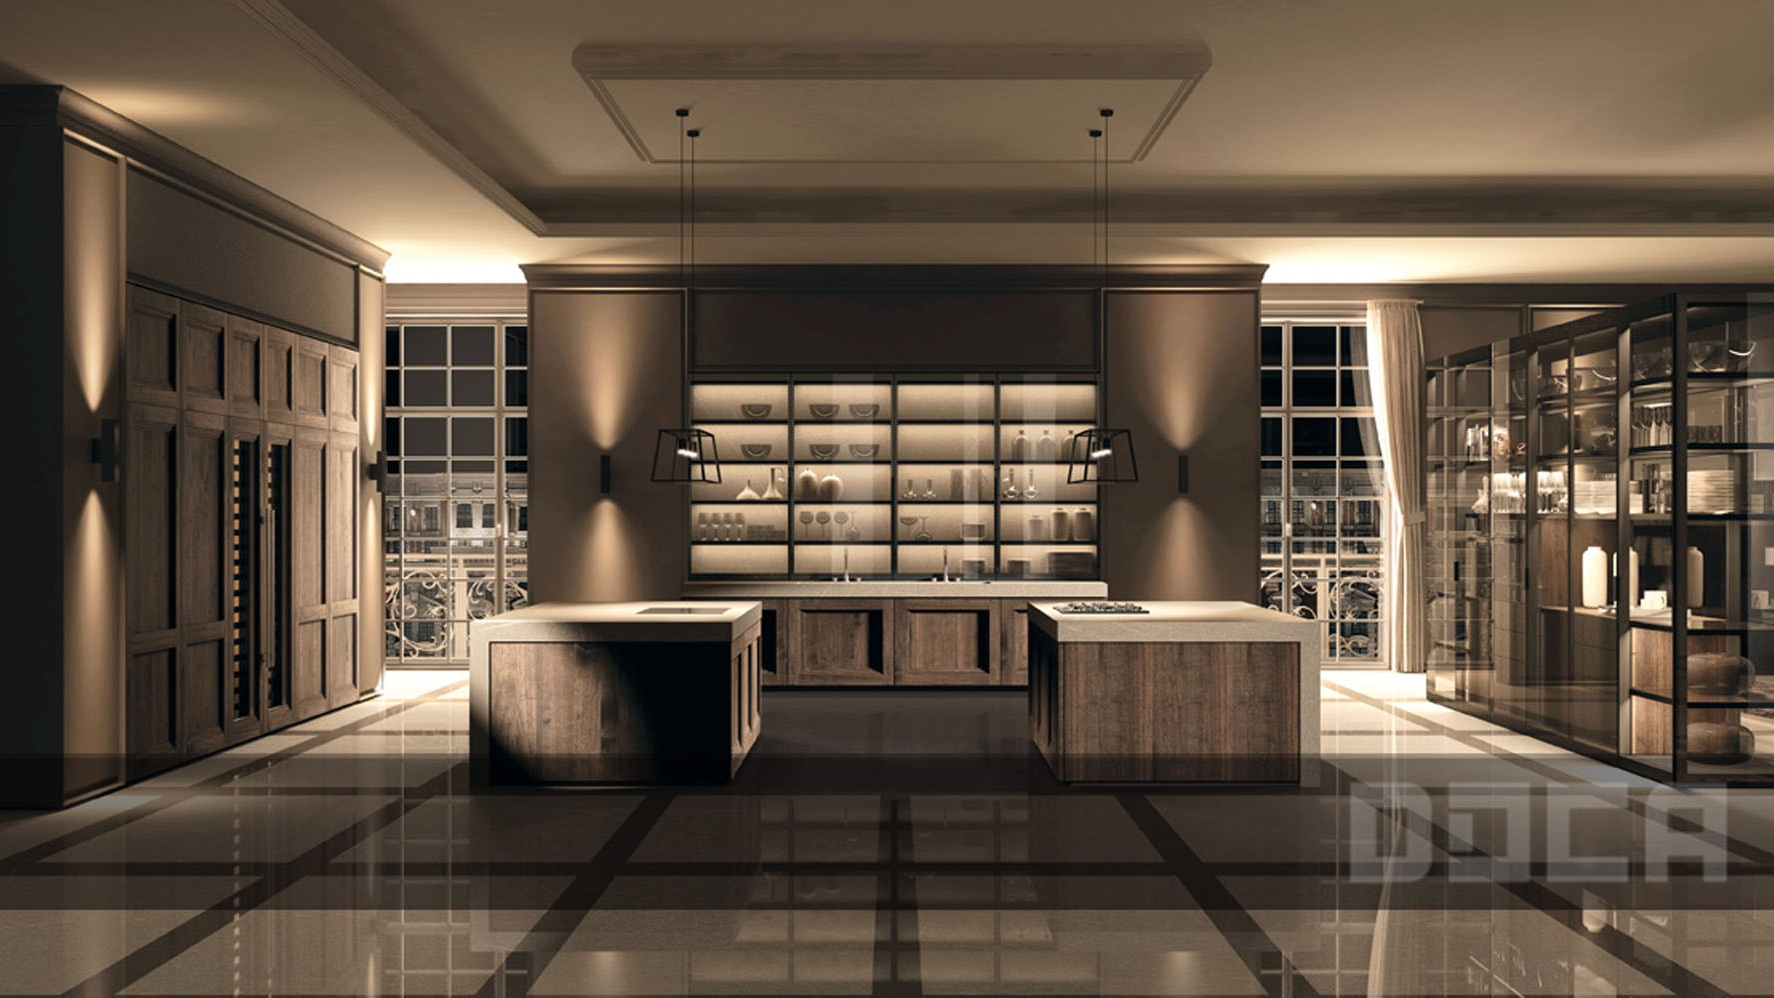 - Responsive Design PartnershipDesigners, architects, and general contractors are busy. We're here to help. Our highly-skilled interior architects work carefully with you and your clients to translate your vision into detailed plans, create specifications, guide material and finish selections, and coordinate purchasing and installation.